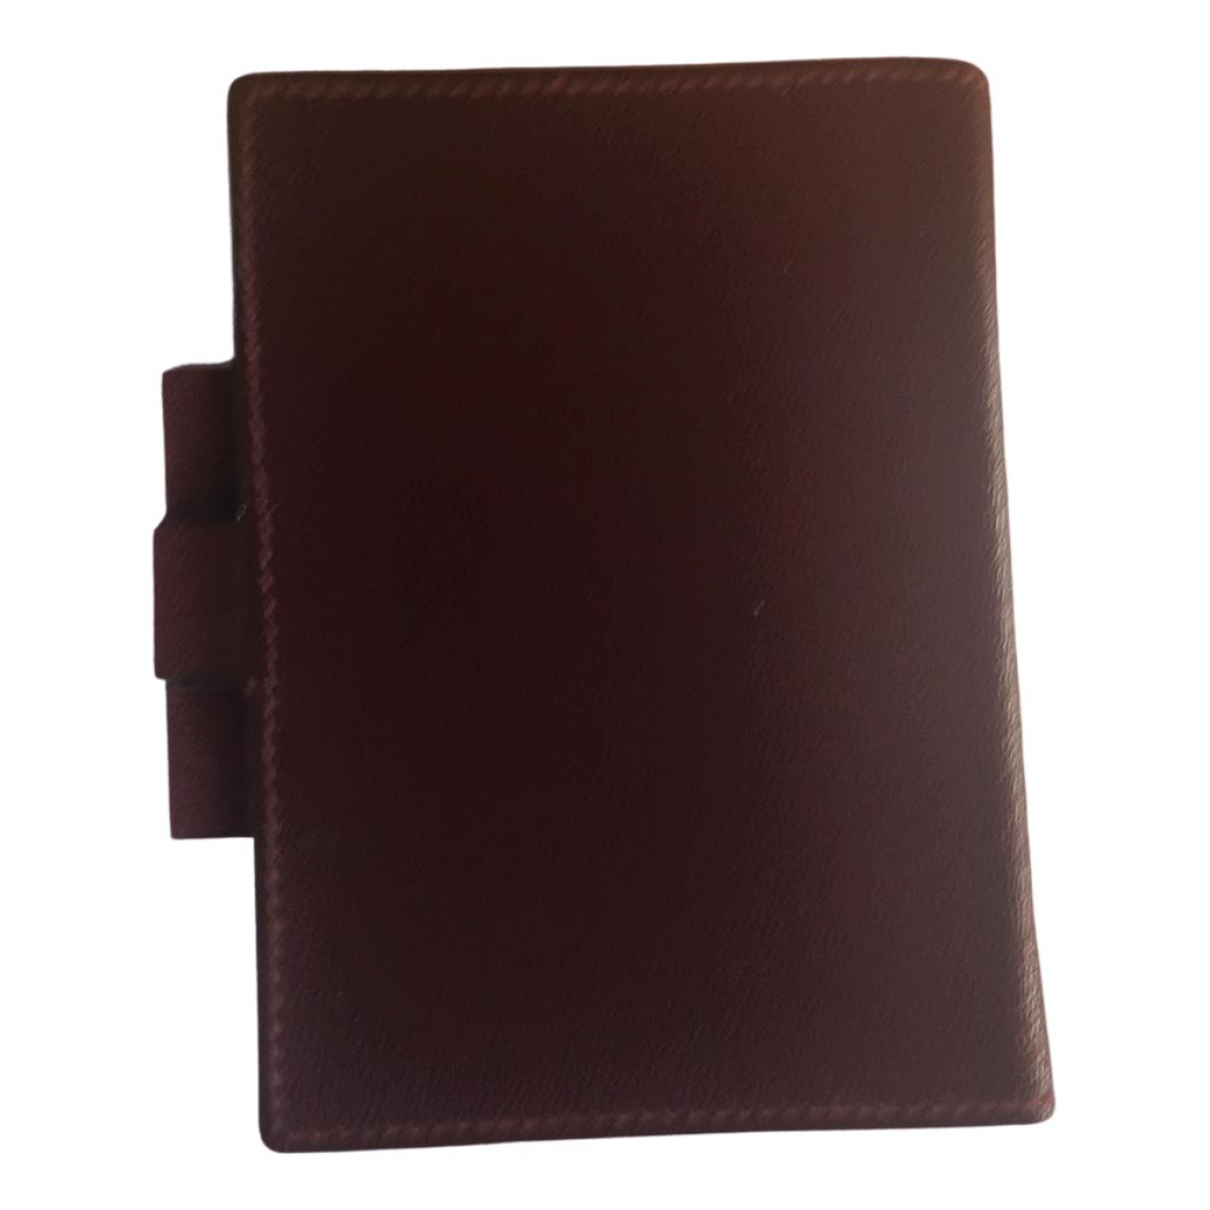 Hermès N Burgundy Leather Home decor for Life & Living N